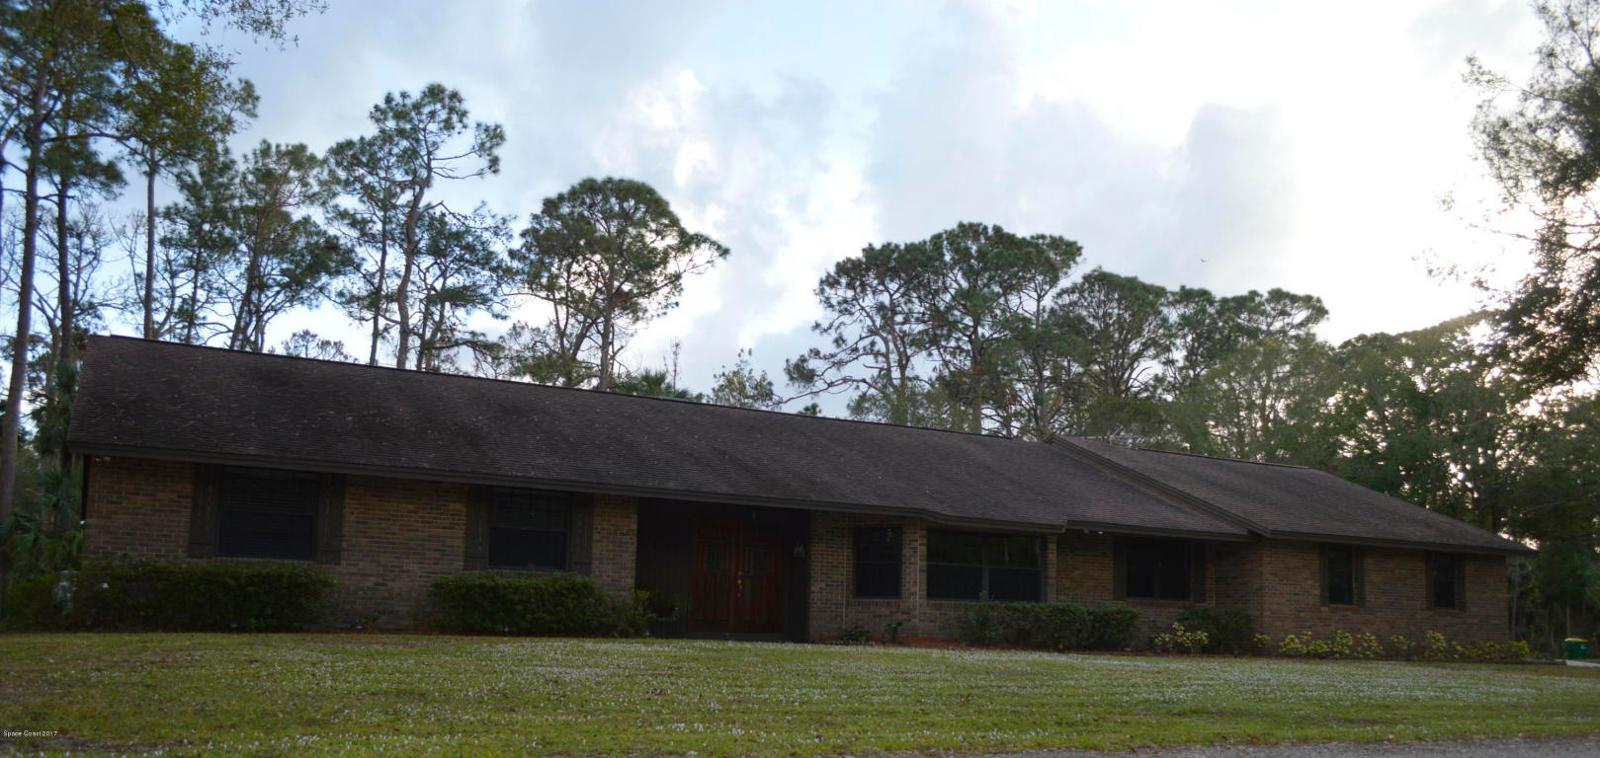 2281 Friday Rd Cocoa Fl Mls 799401 Better Homes And Gardens Real Estate